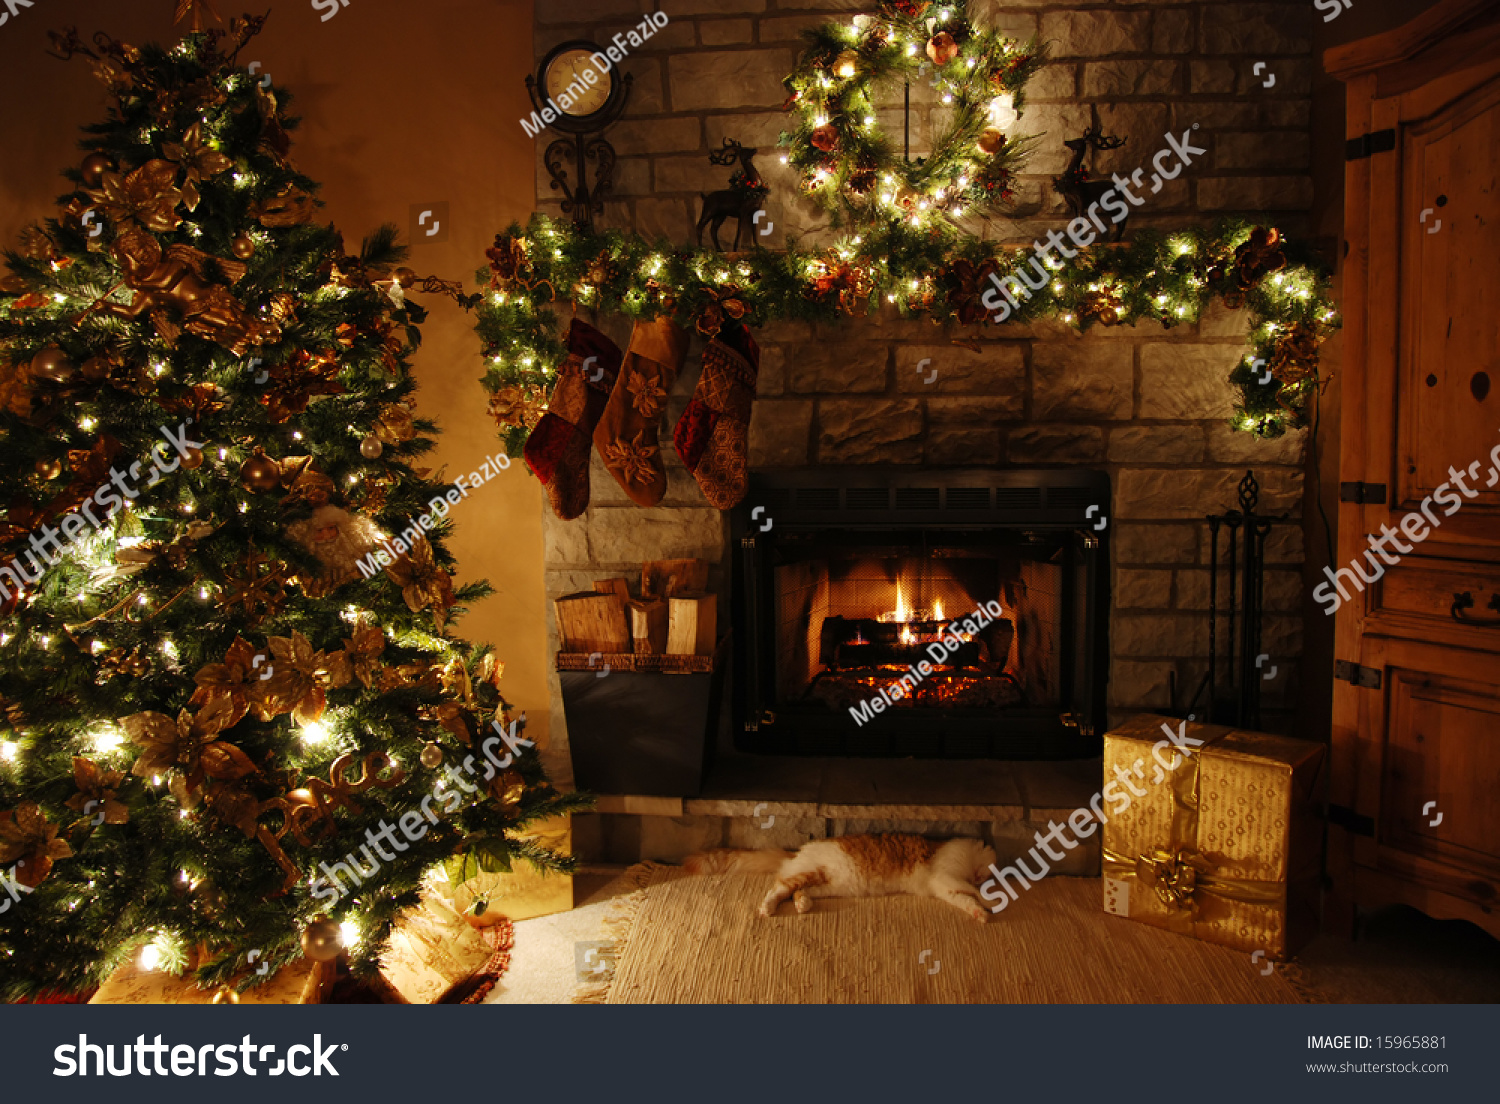 Wonderful Fireplaces In The Dining Room For Cozy And Warm: Warm Cozy Room Fireplacelowlight Stock Photo 15965881